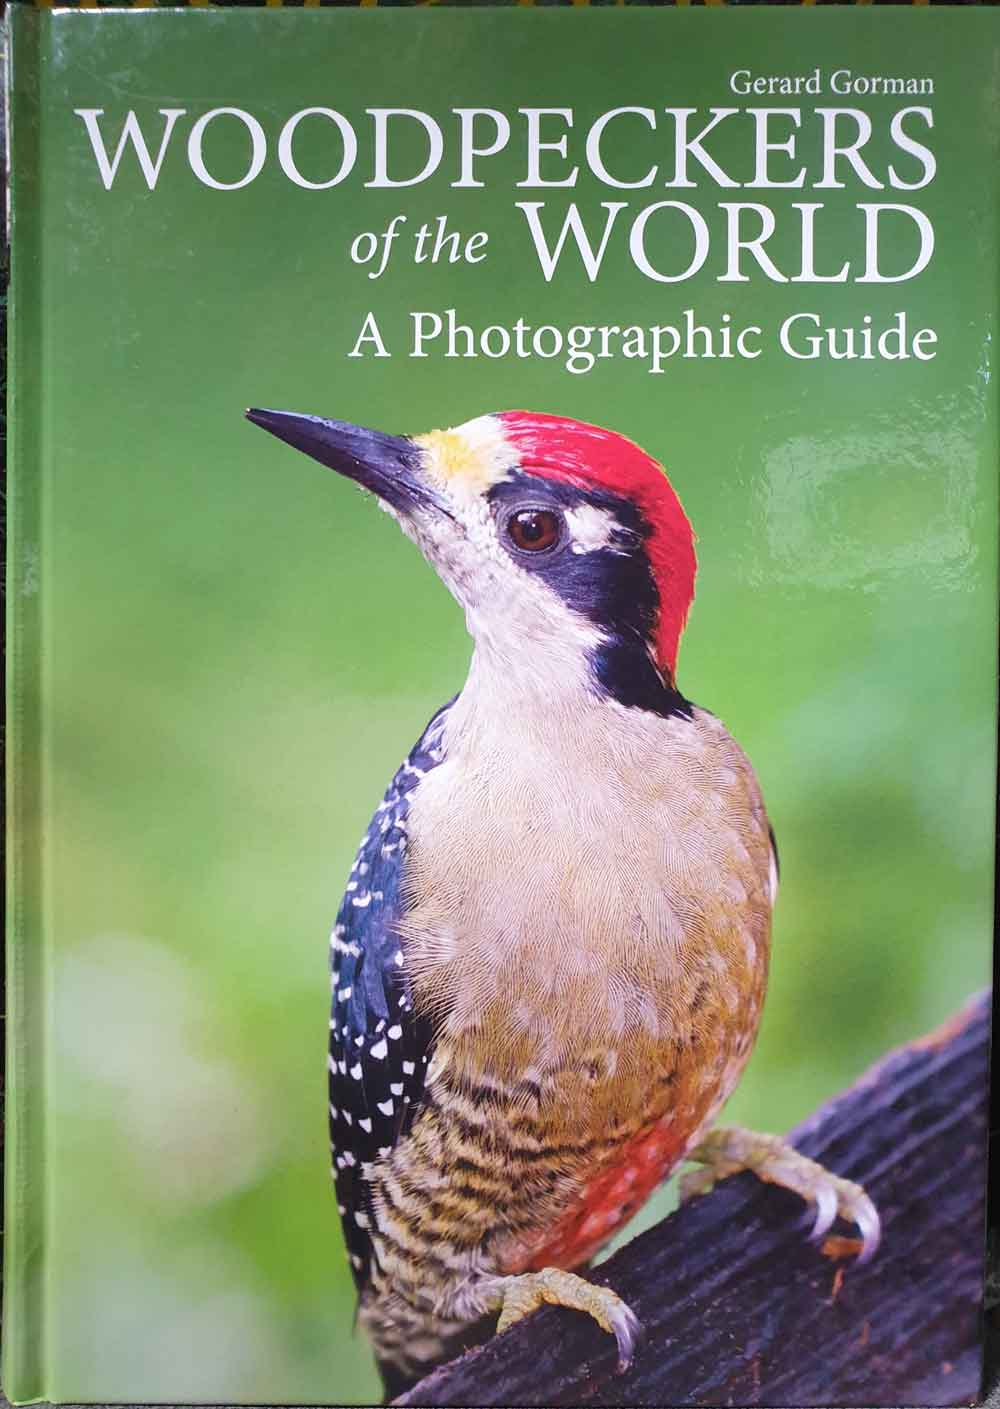 woodpecker-books-June-2019-Gorman-1000px-tiny-June-2019-Darren-Naish-Tetrapod-Zoology.jpg